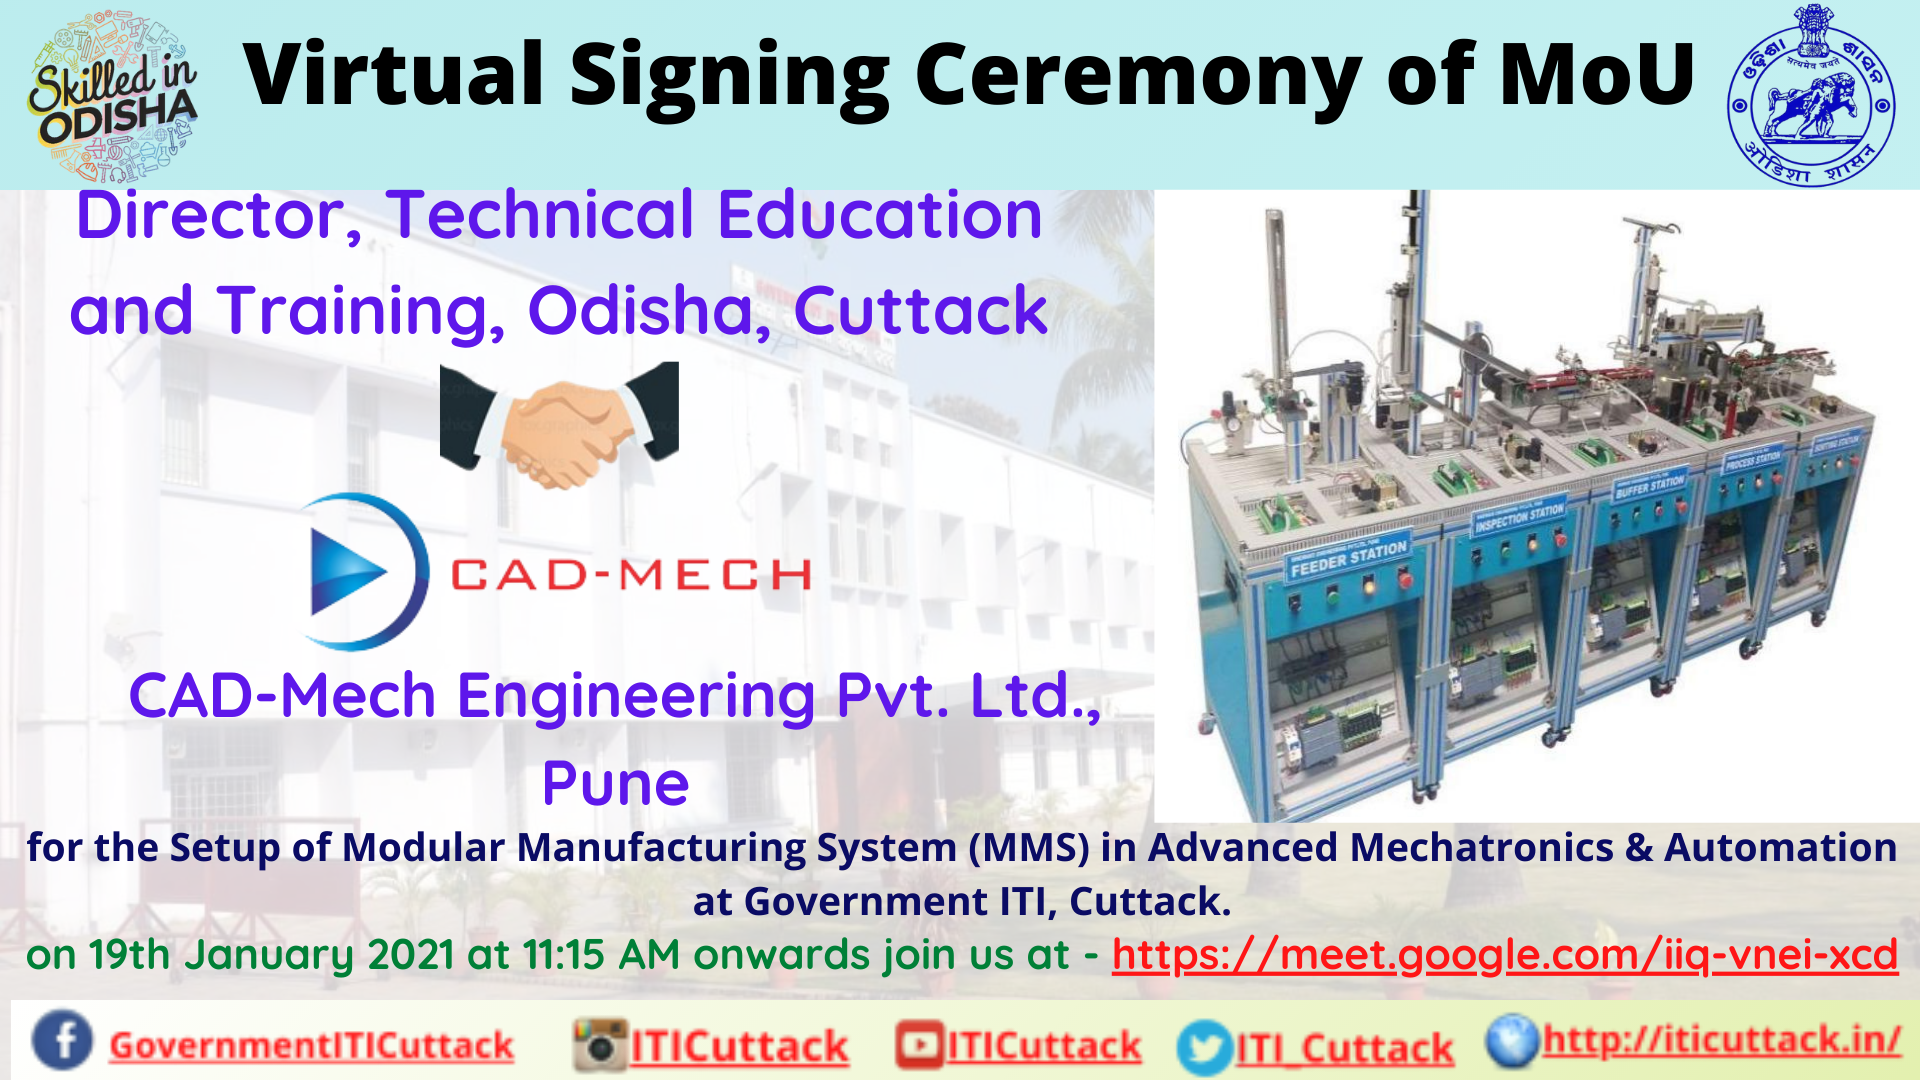 19-01-2021_MoU with CAD-MECH ENGINEERING PVT. LTD., PUNE